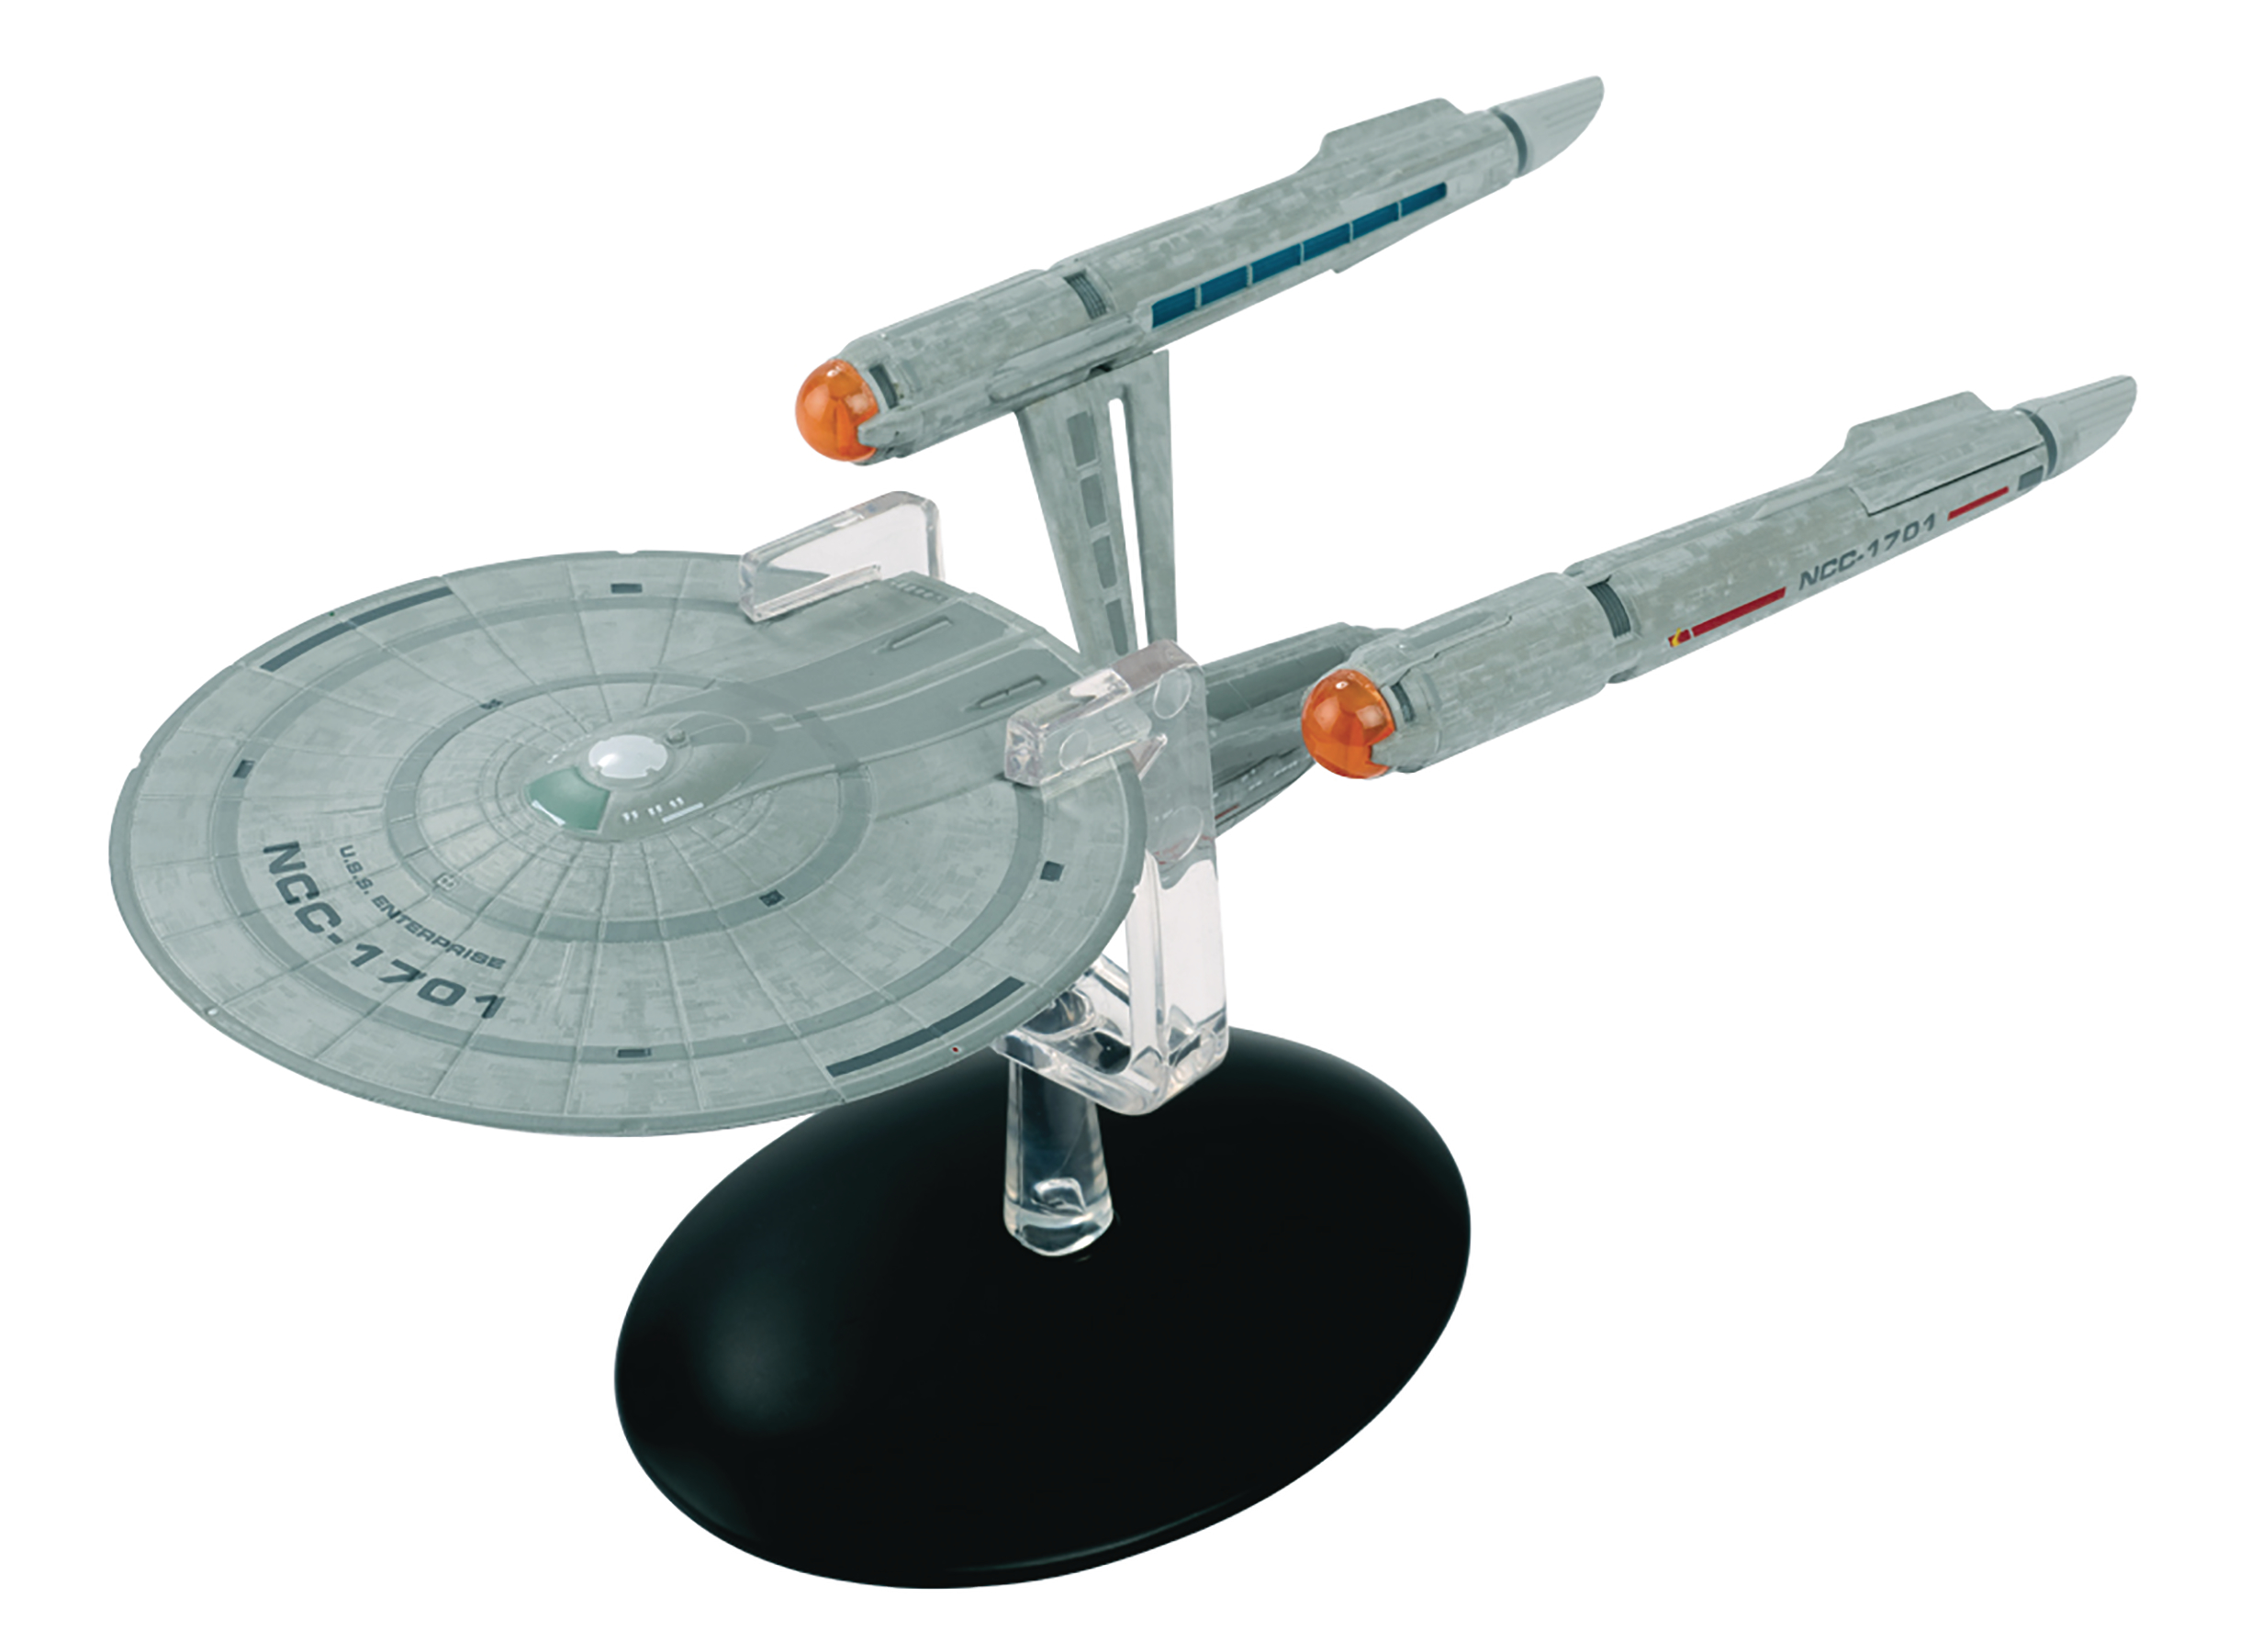 STAR TREK DISCOVERY FIG MAG #12 USS ENTERPRISE NCC-1701